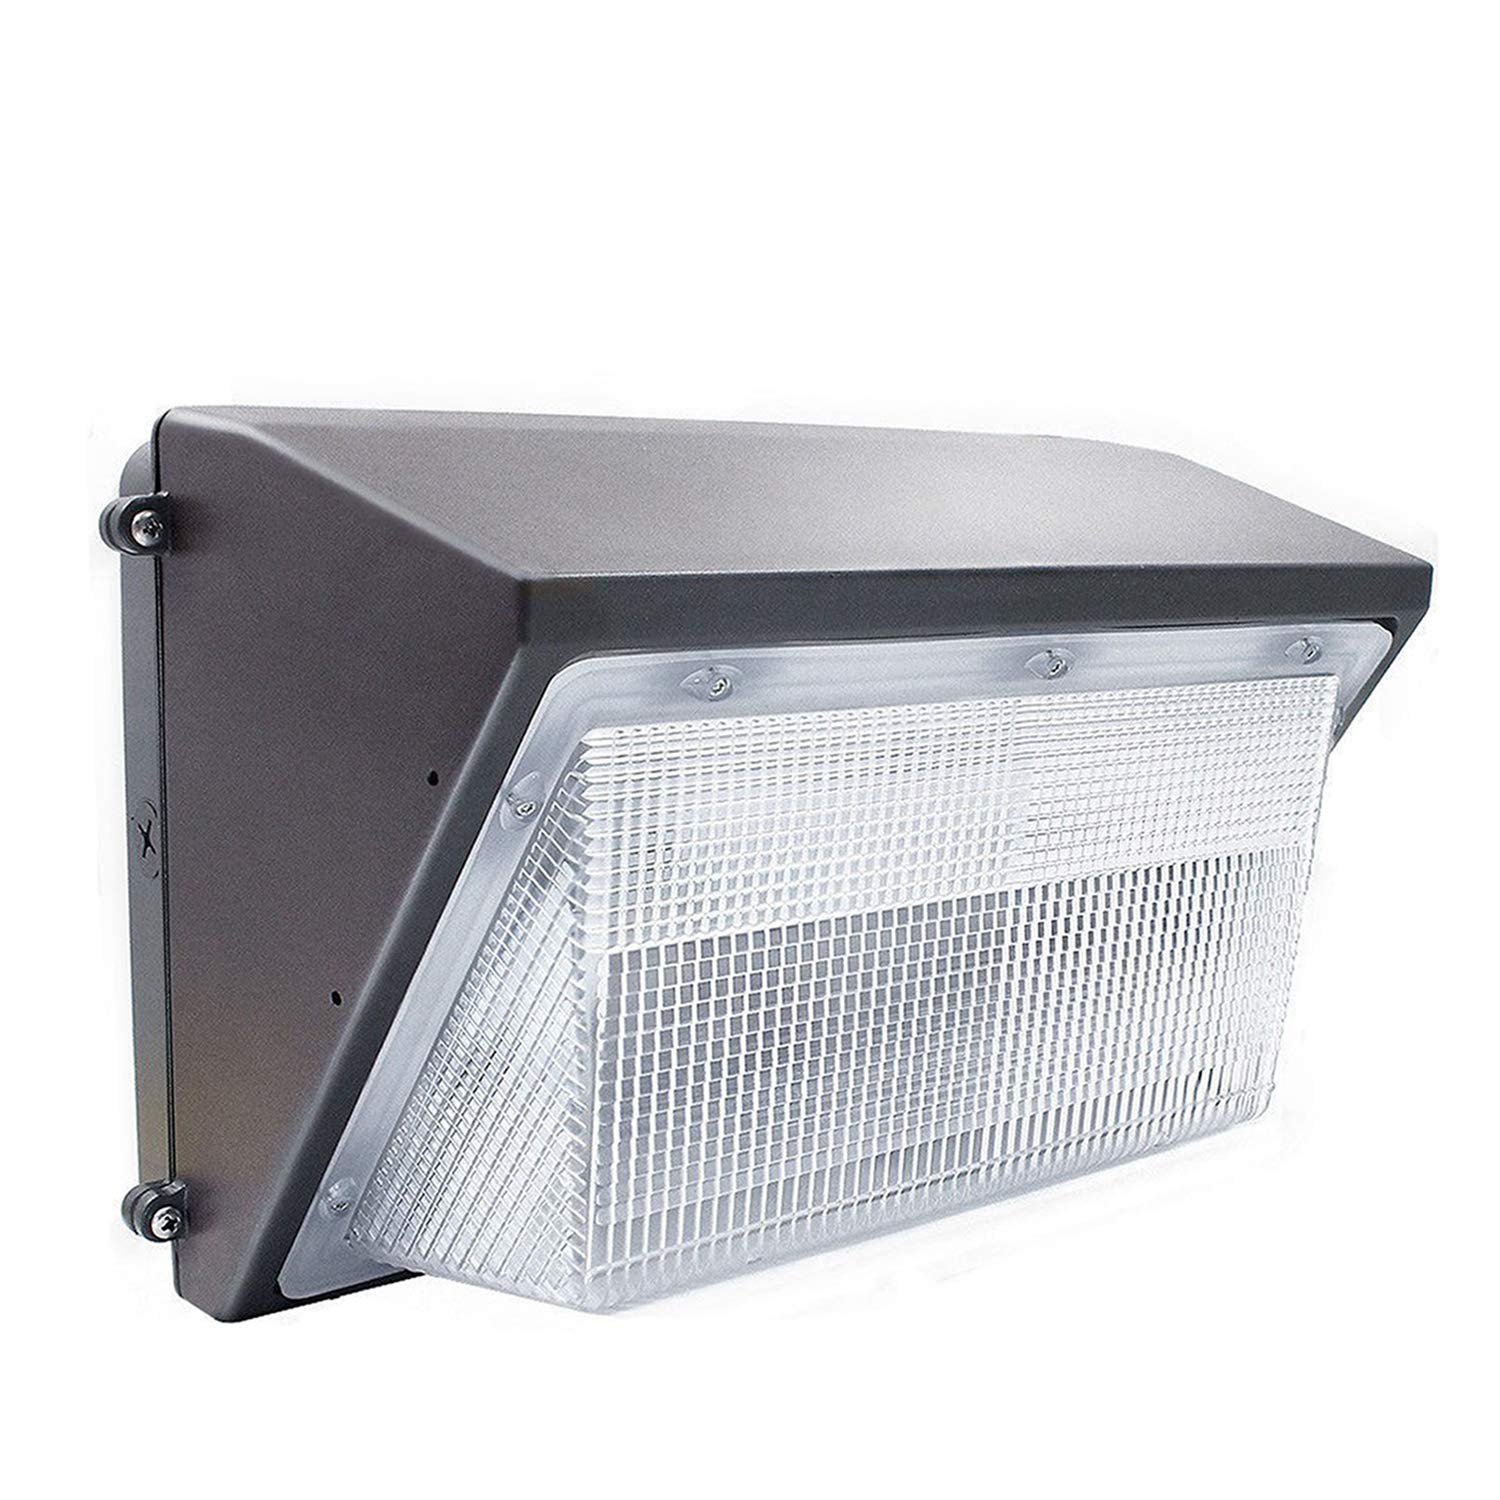 125w led wall pack lightetl list15000lm and 5500k super bright white outdoor wall pack led security light500 600w hps metal halide bulb replacement